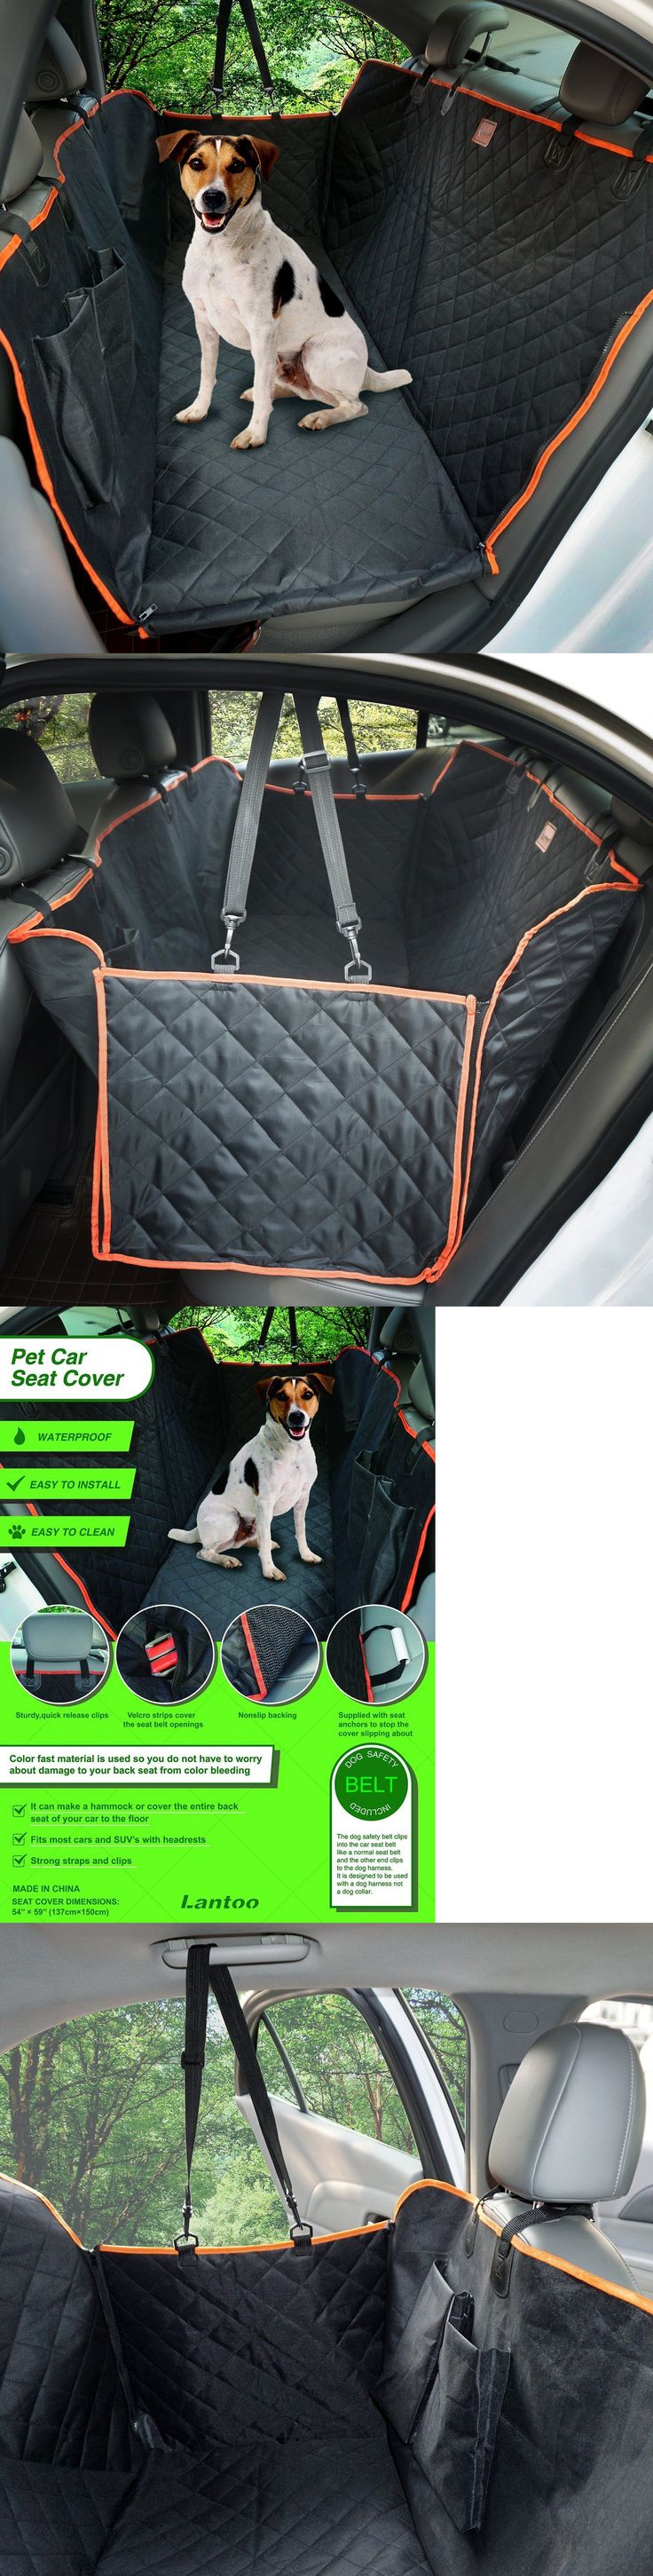 Car Seat Covers 117426: Lantoo Dog Seat Cover, Large Back Seat Pet Seat Cover Hammock For Cars, Trucks, -> BUY IT NOW ONLY: $43.39 on eBay!